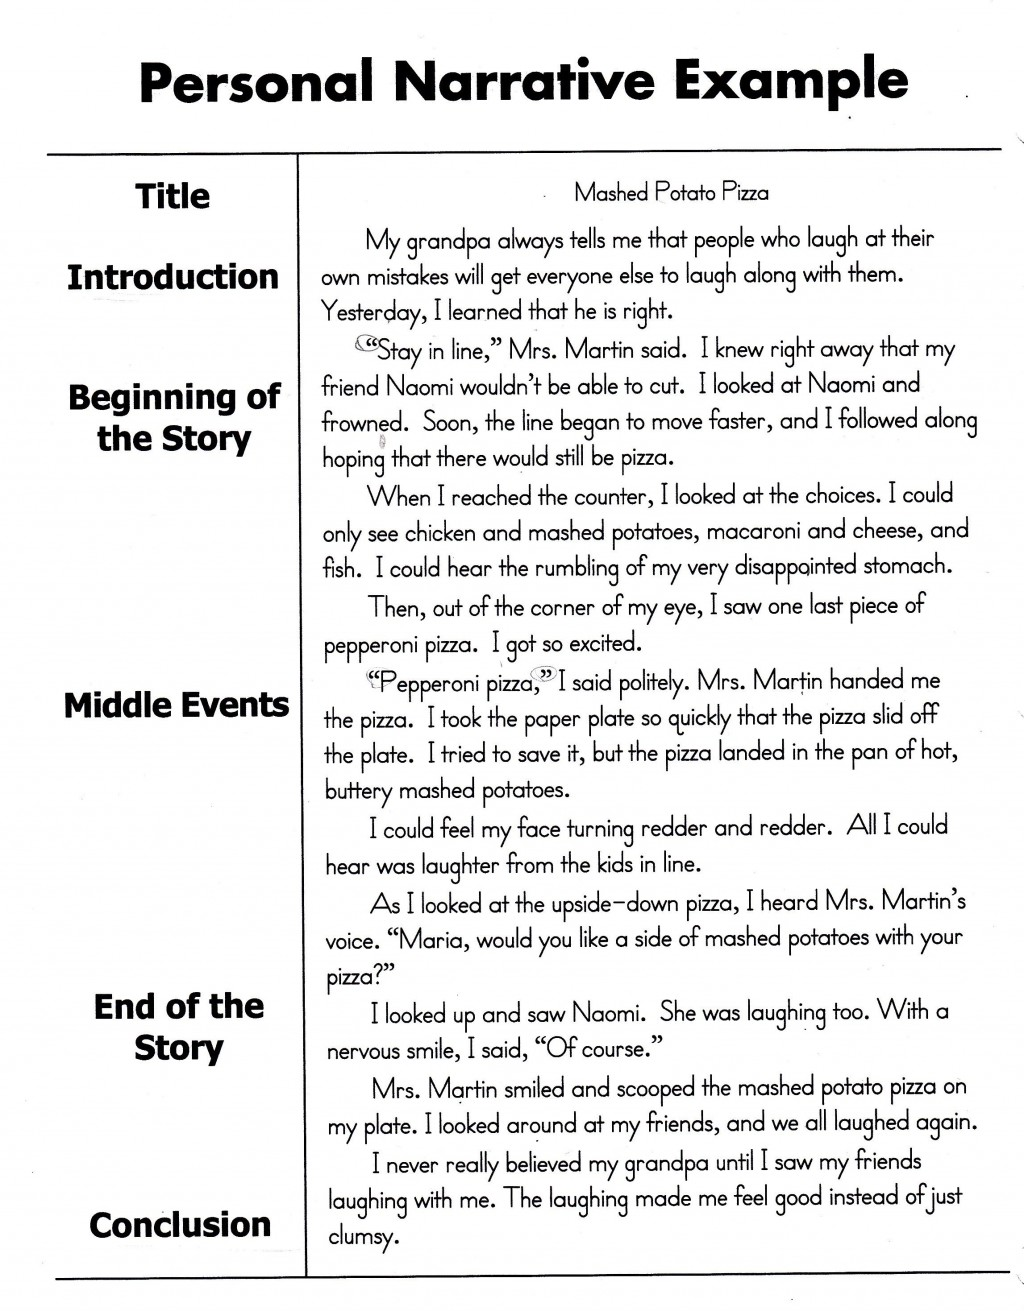 001 Personal Narrative Essay Topics Excellent For Middle School High Students Large